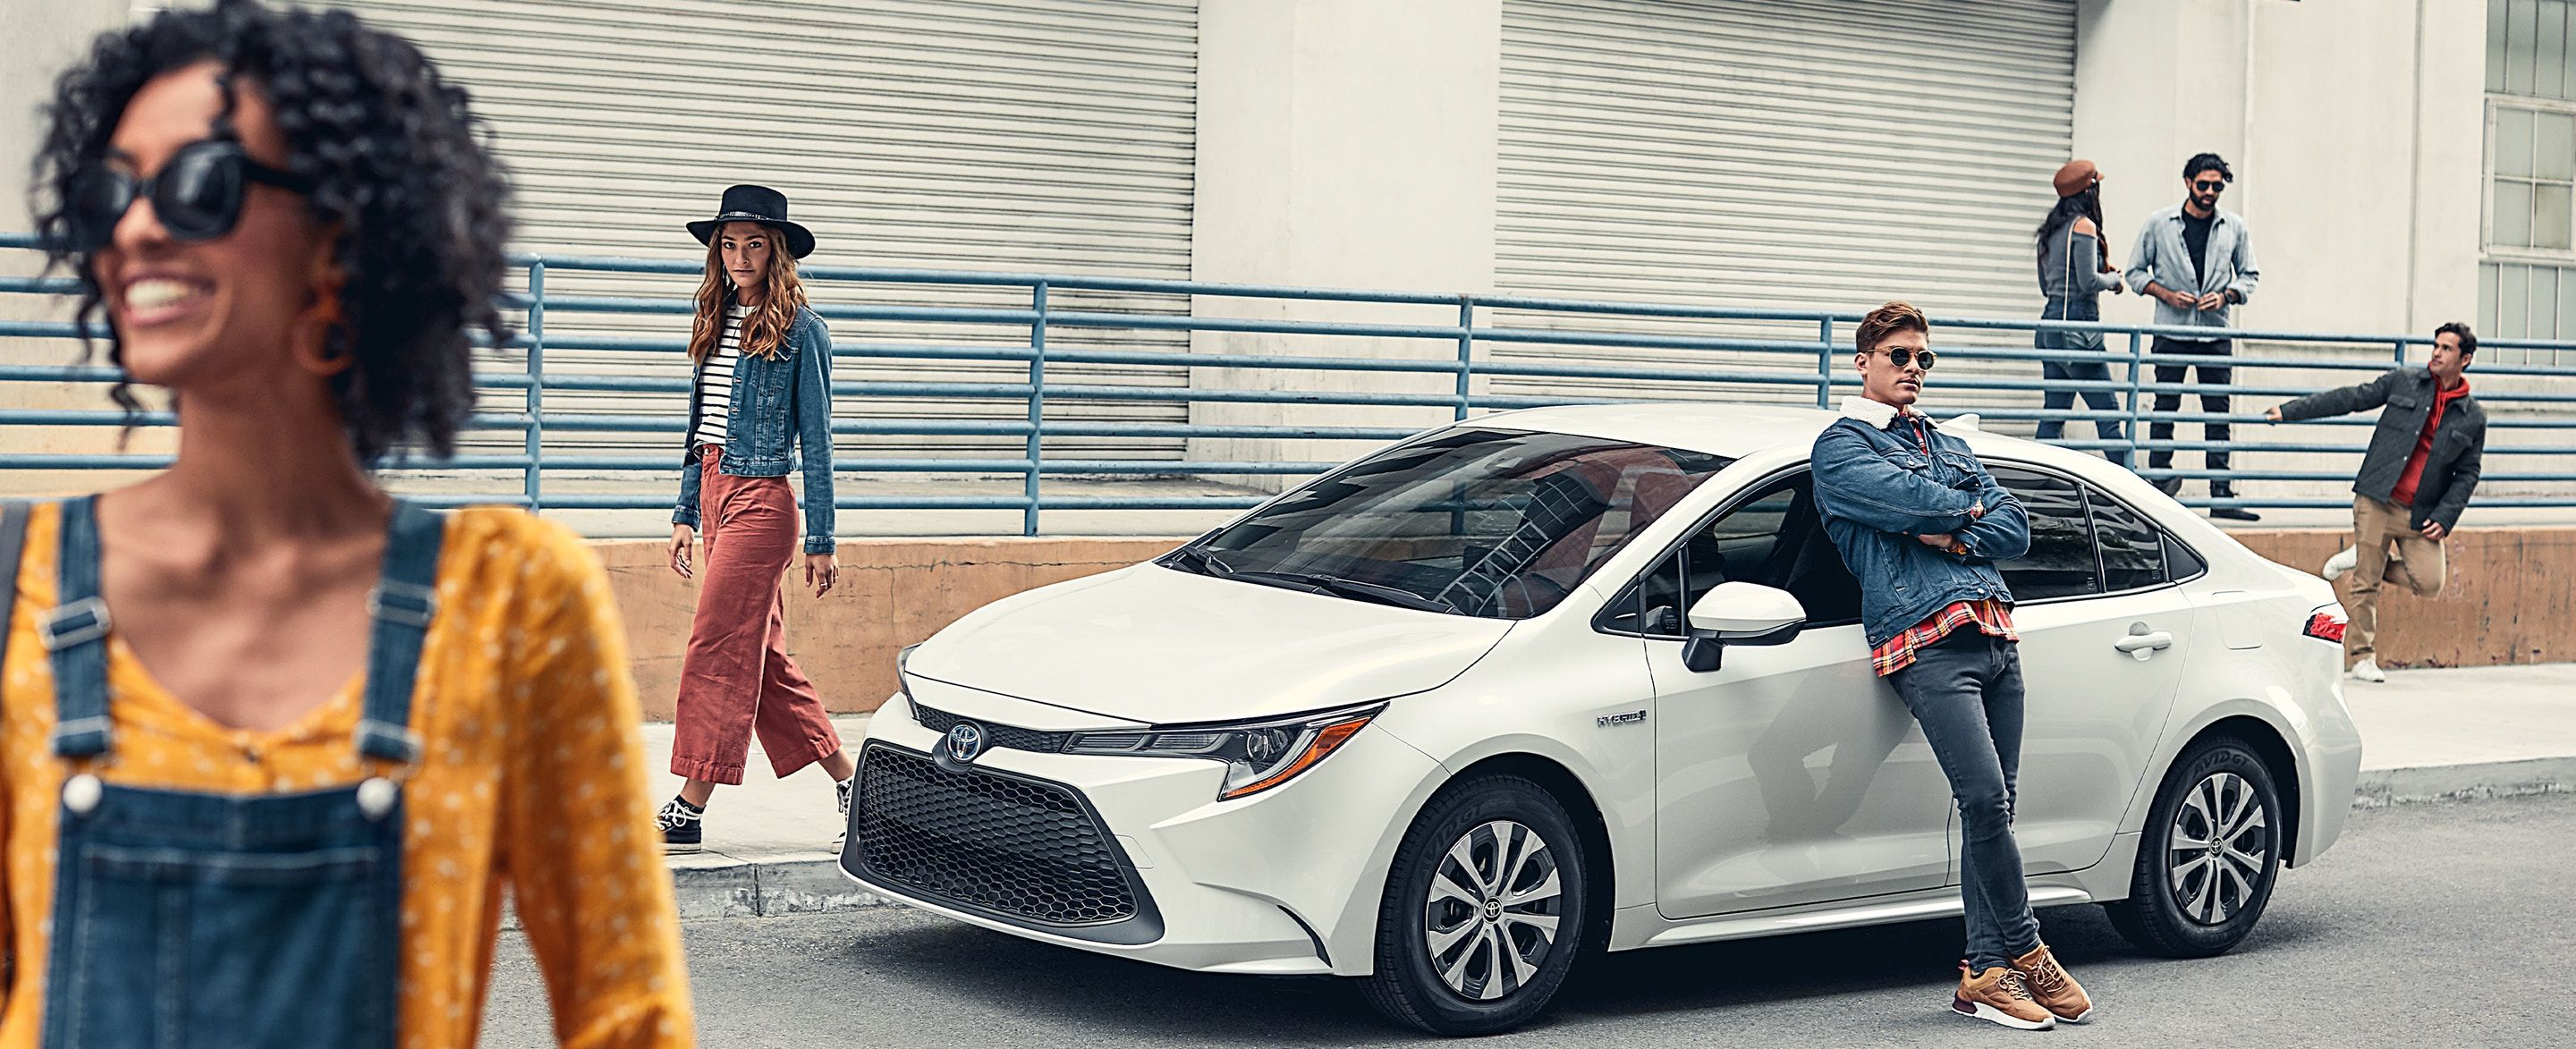 2020 Toyota Corolla Hybrid for Sale near Lee's Summit, MO, 64086